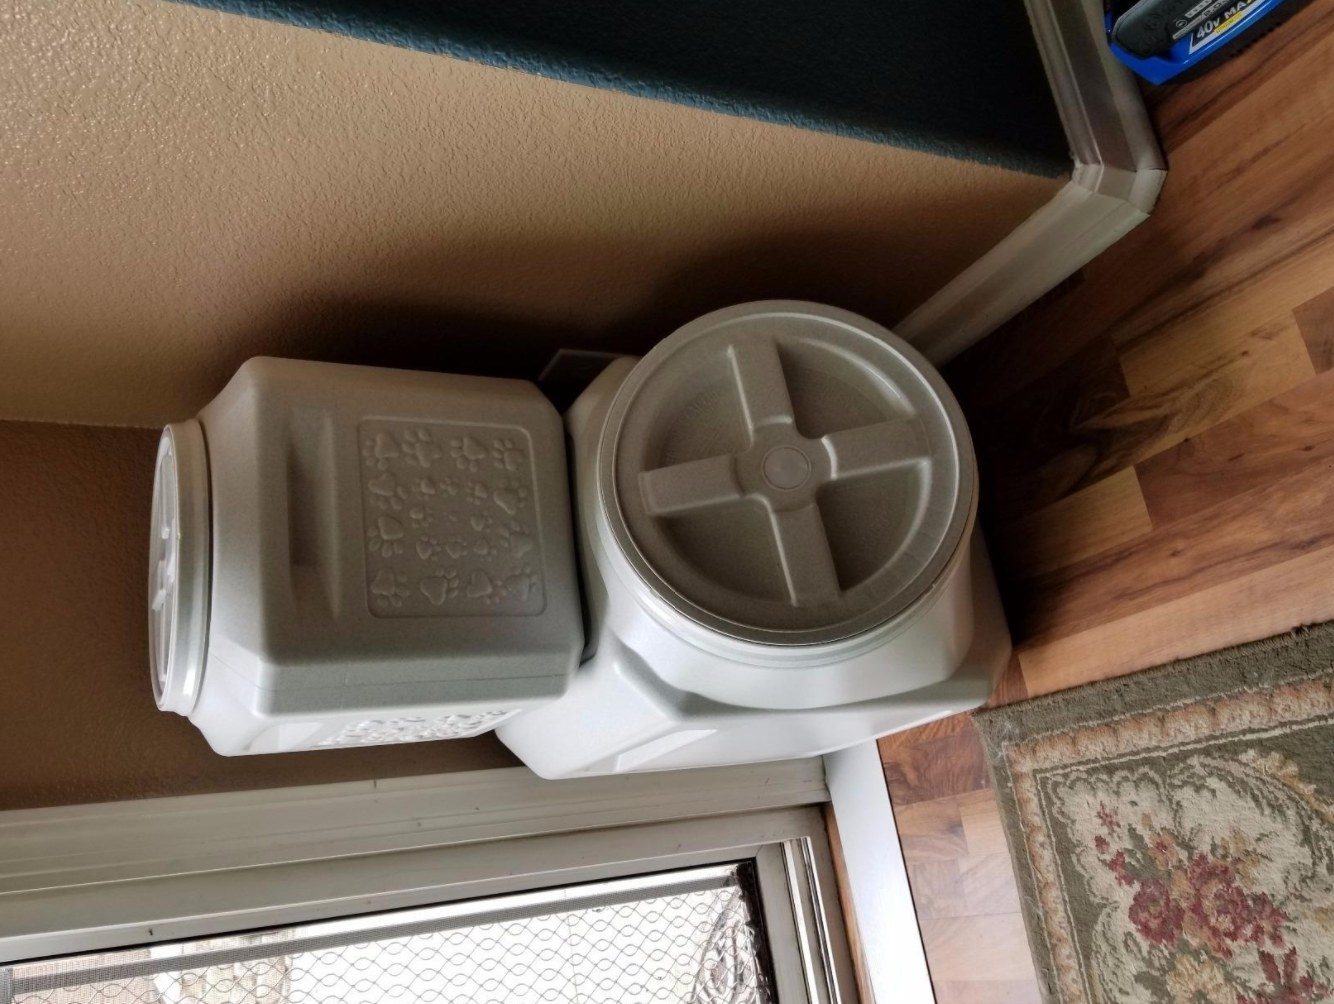 The pet food storage container